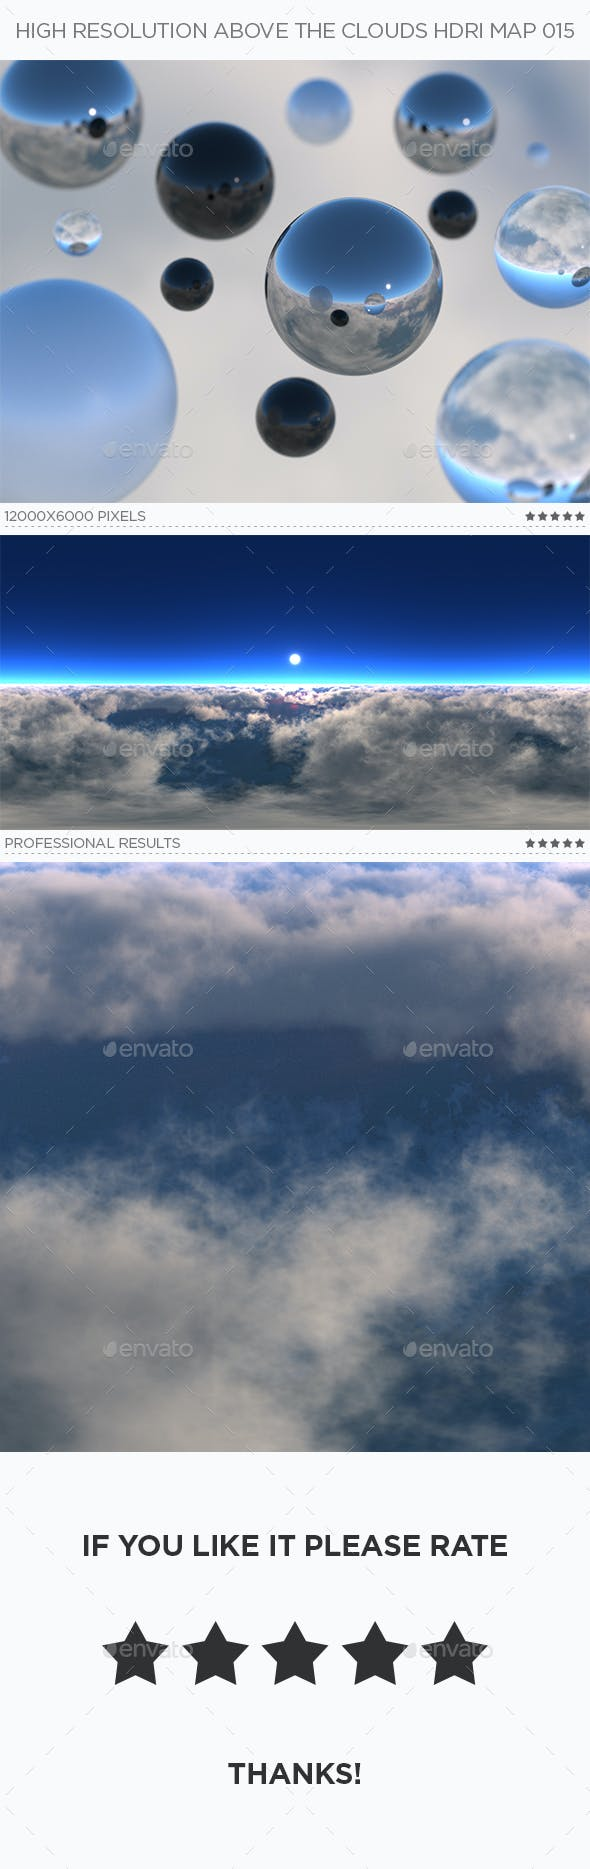 High Resolution Above The Clouds HDRi Map 015 - 3DOcean Item for Sale